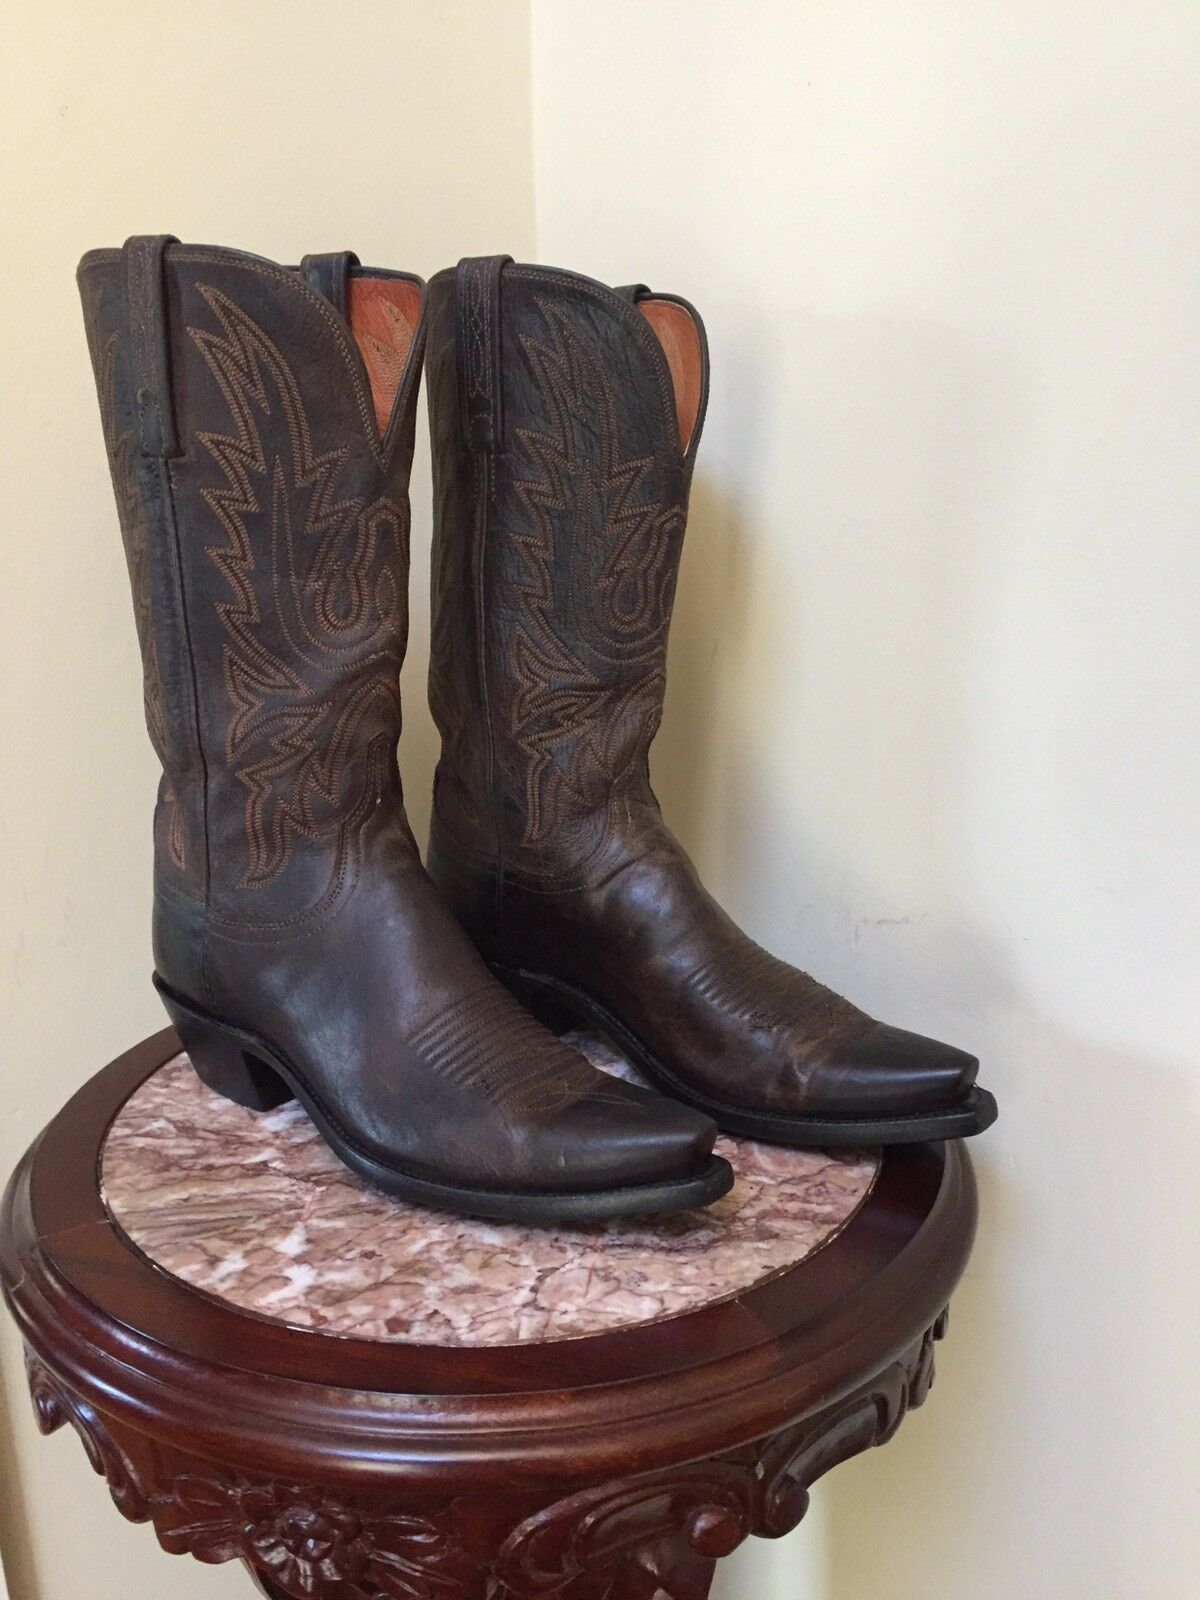 1883 by LUCCHESE Womens - N4554.4 Brown Mad Dog Goat Goat Goat Leather Boot Size 8.5 Med 725d35